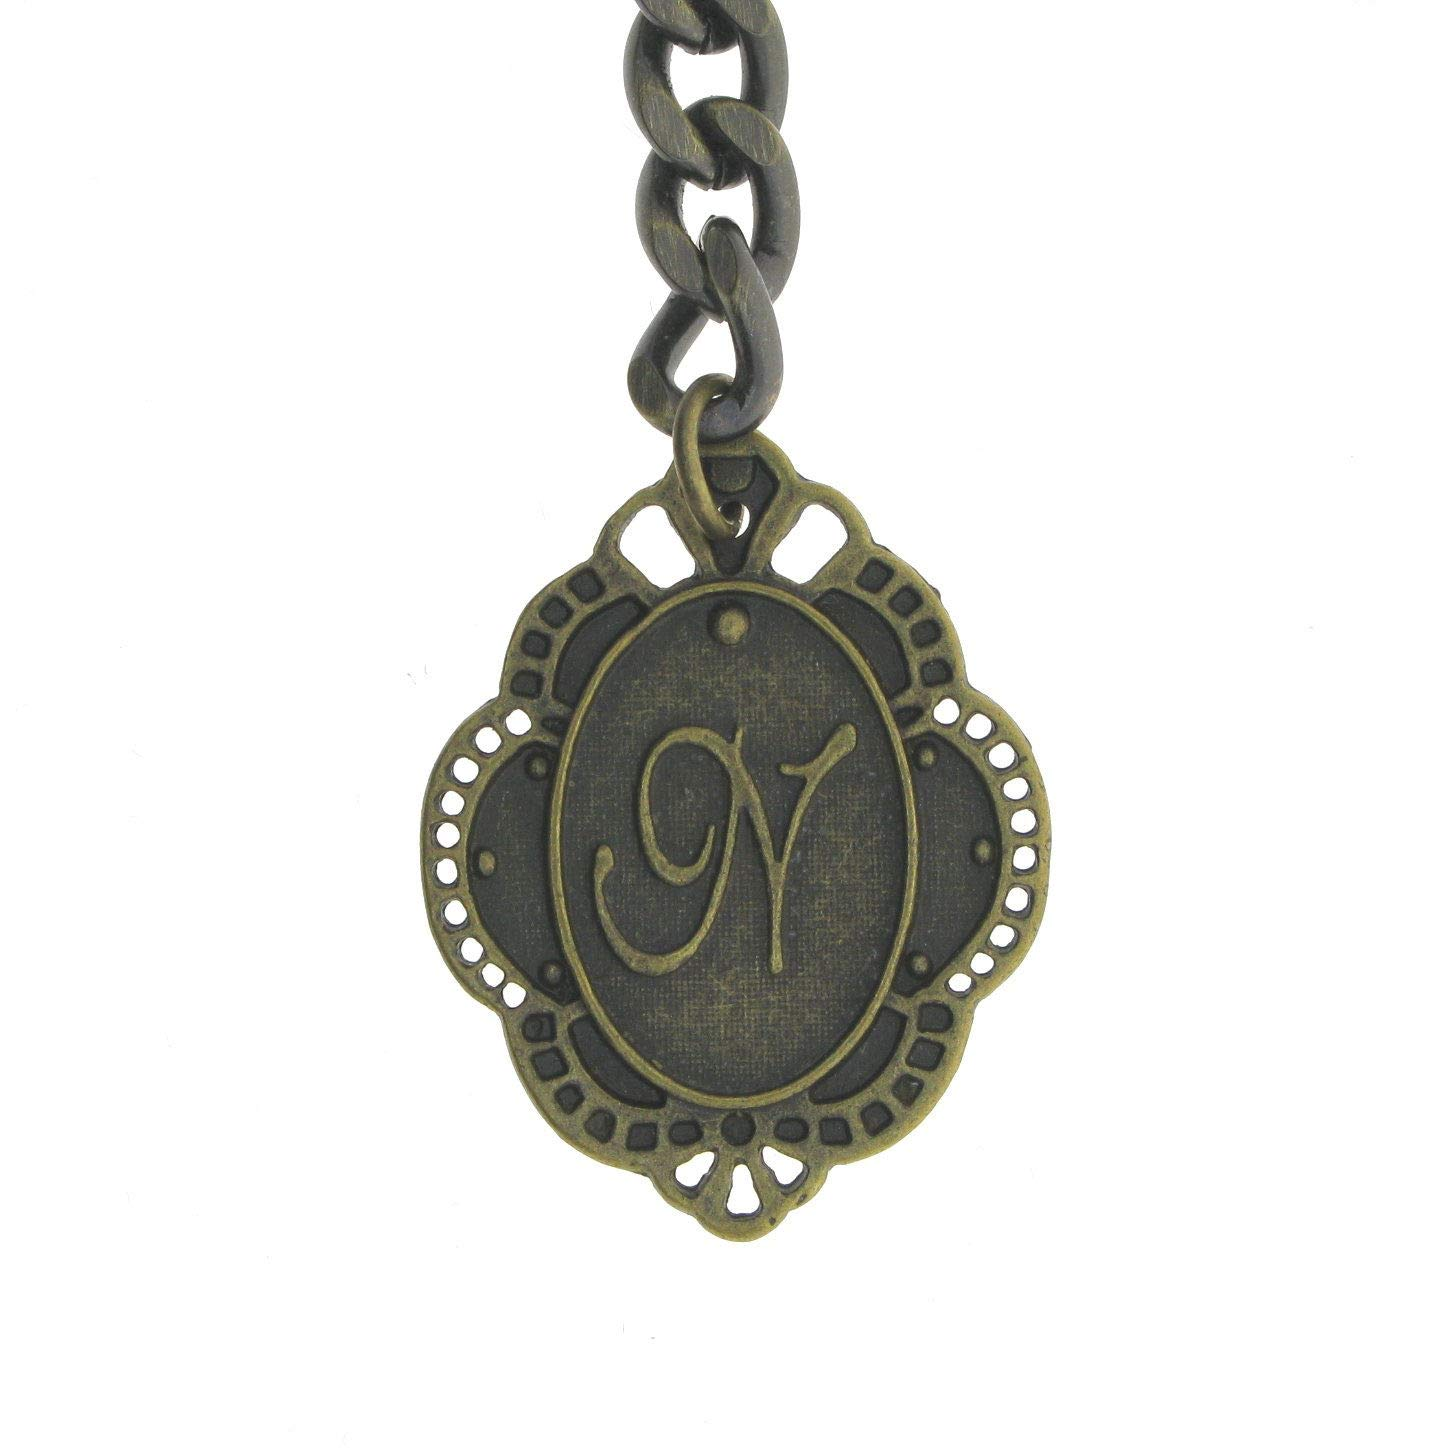 Albert Chain Pocket Watch Curb Link Chain Antique Brass Color + Alphabet N Initial Letter Fob T Bar AC84 by watchvshop (Image #5)